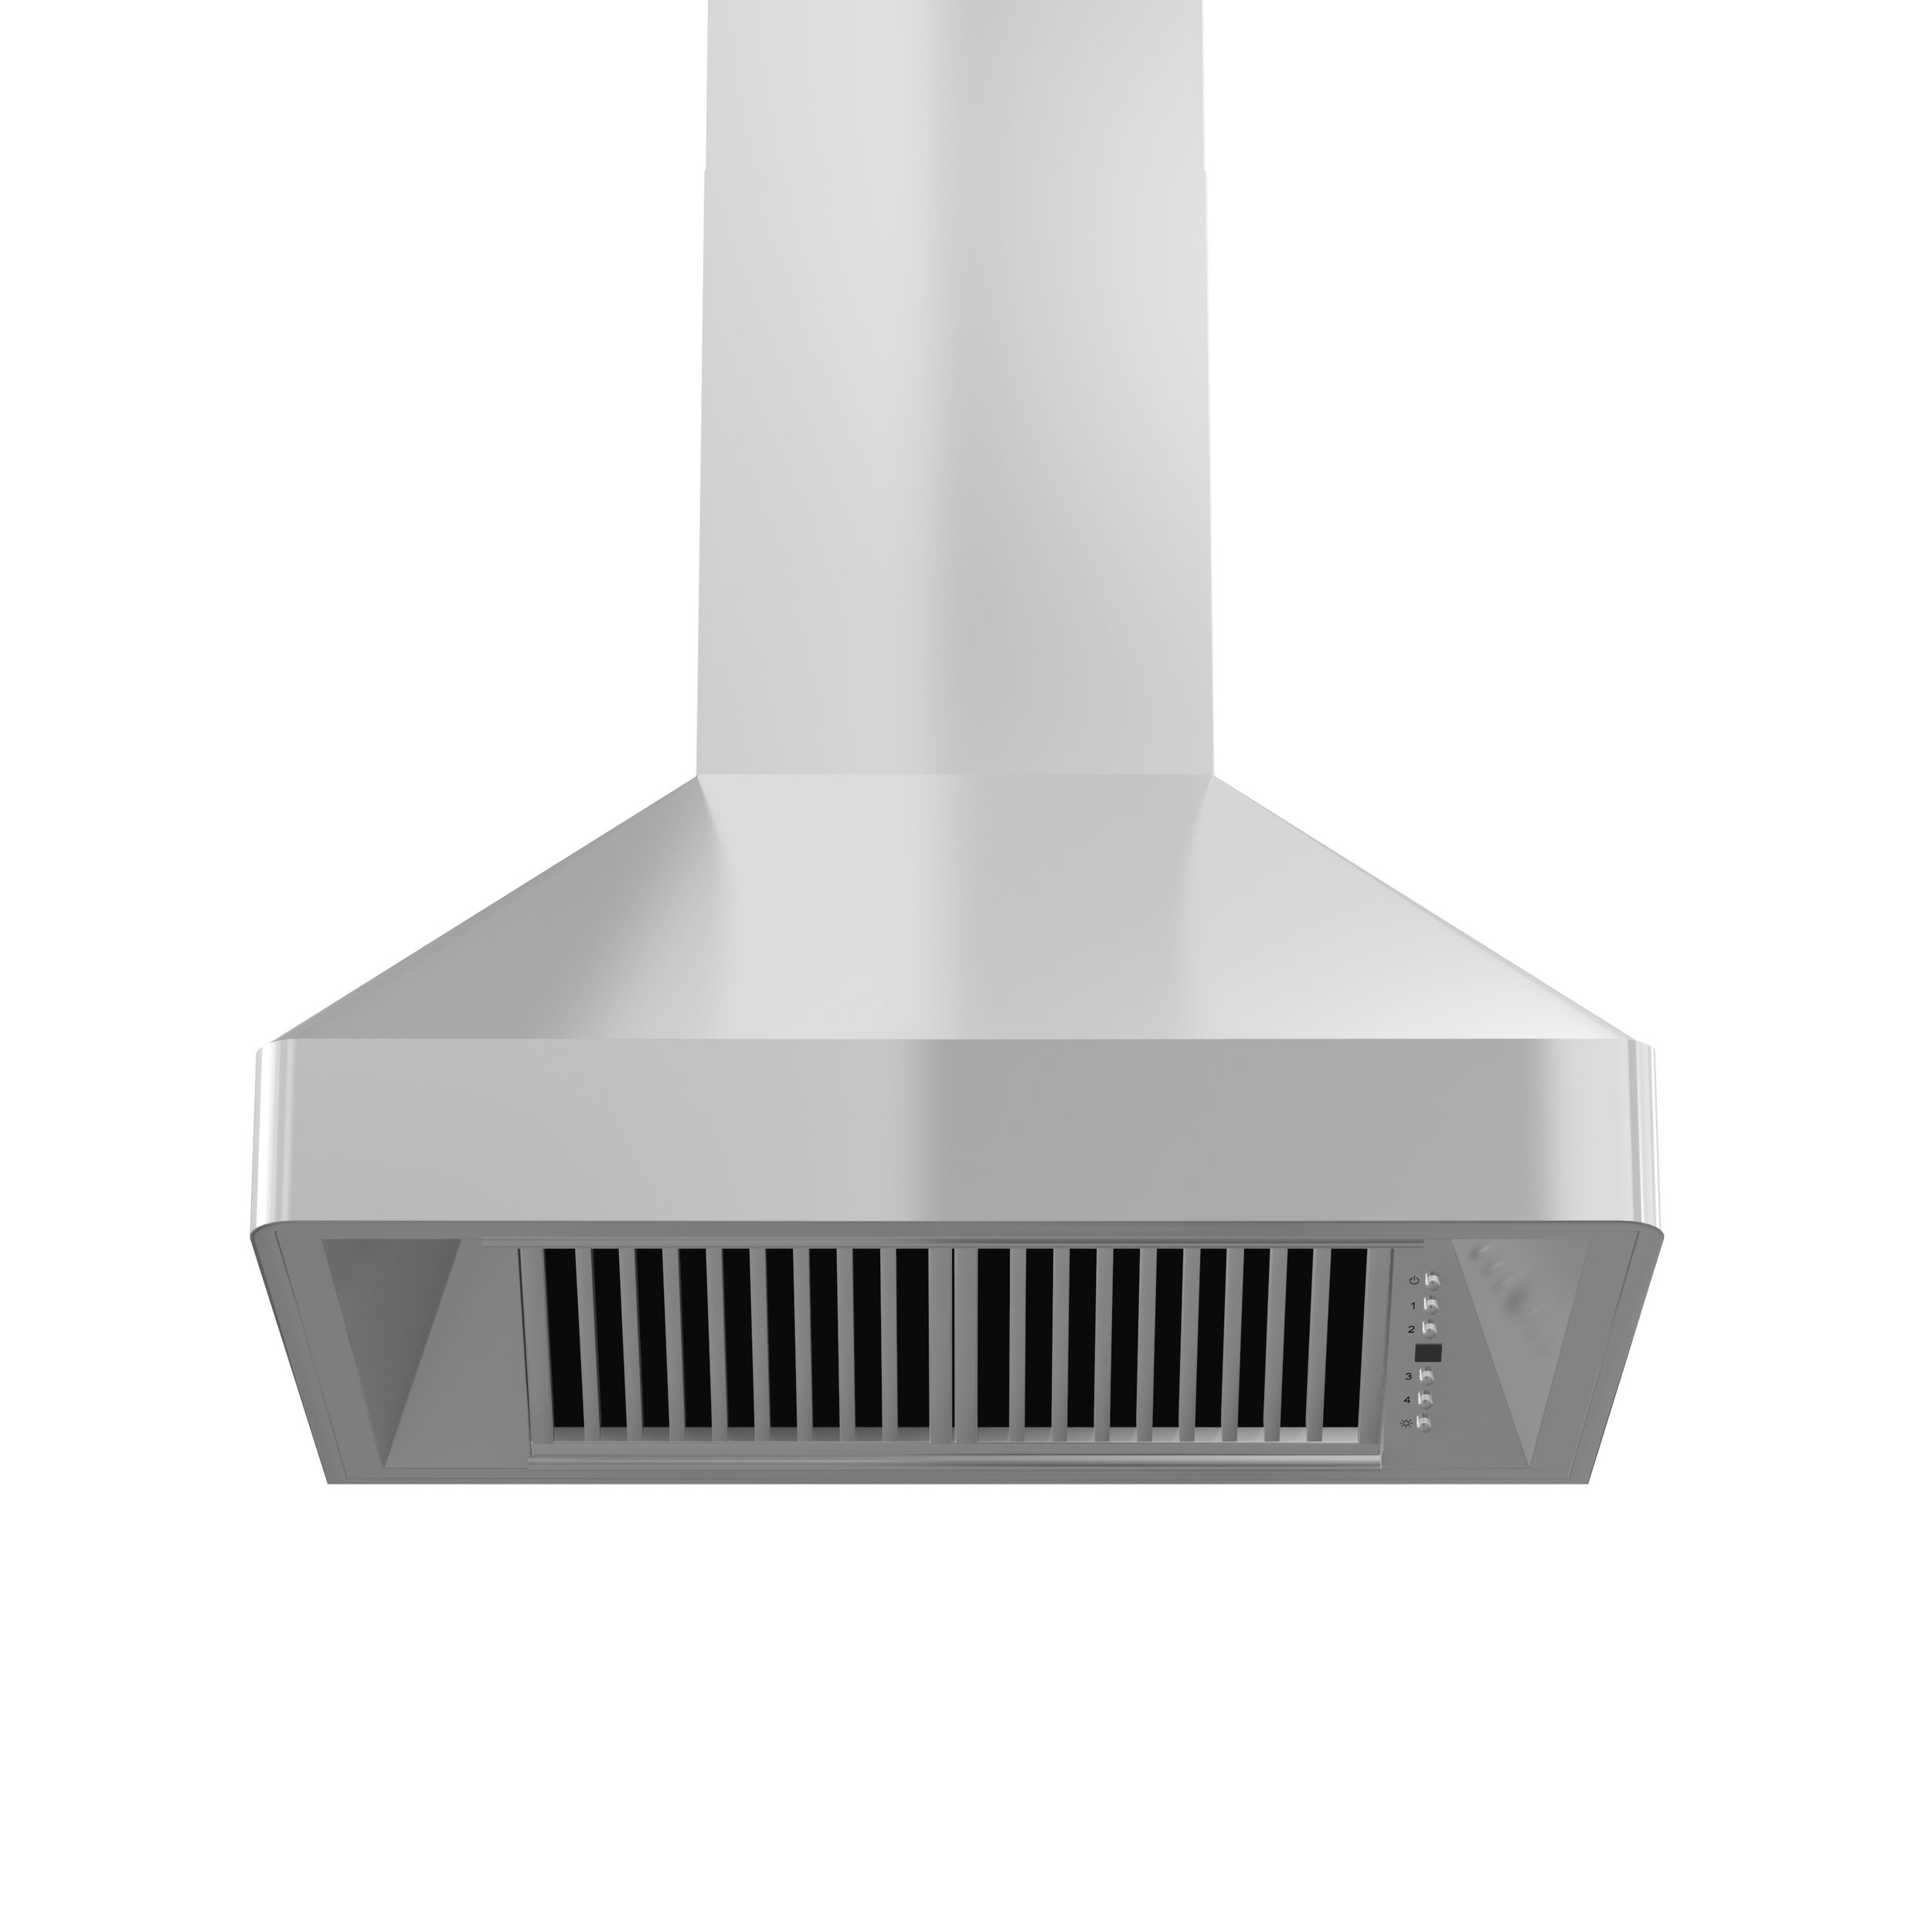 zline-stainless-steel-wall-mounted-range-hood-9597-underneath.jpg